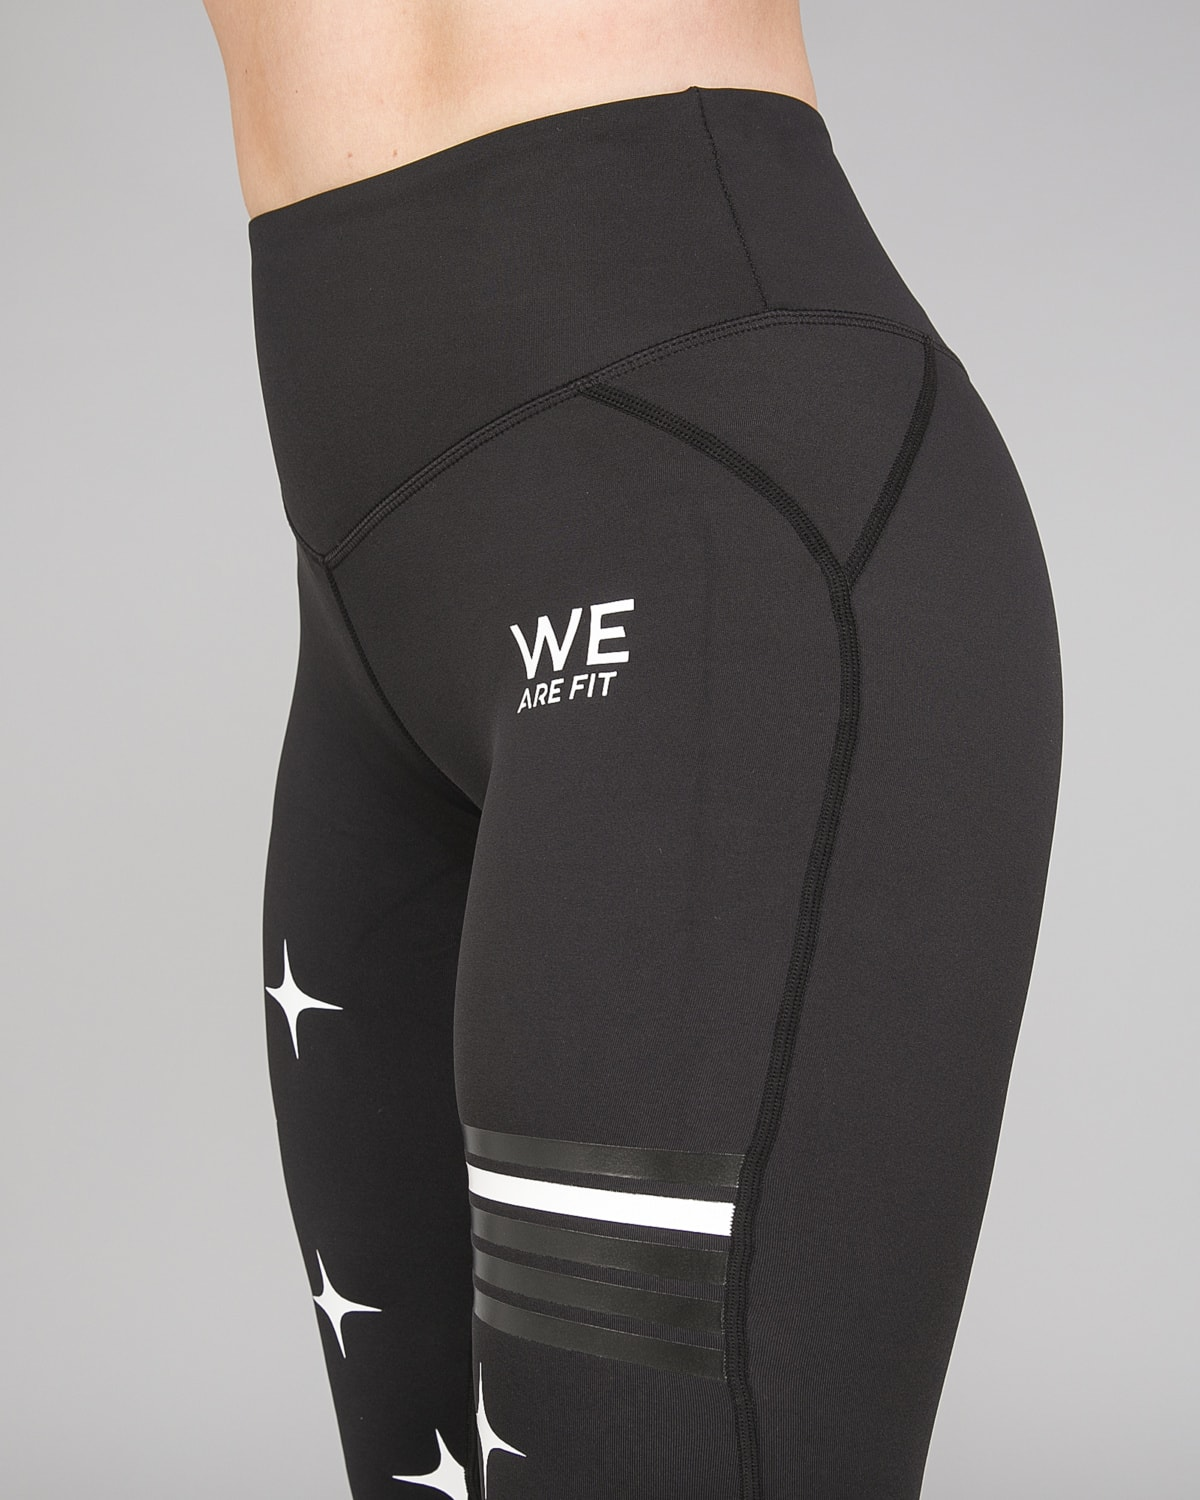 We Are Fit Star White Tights6